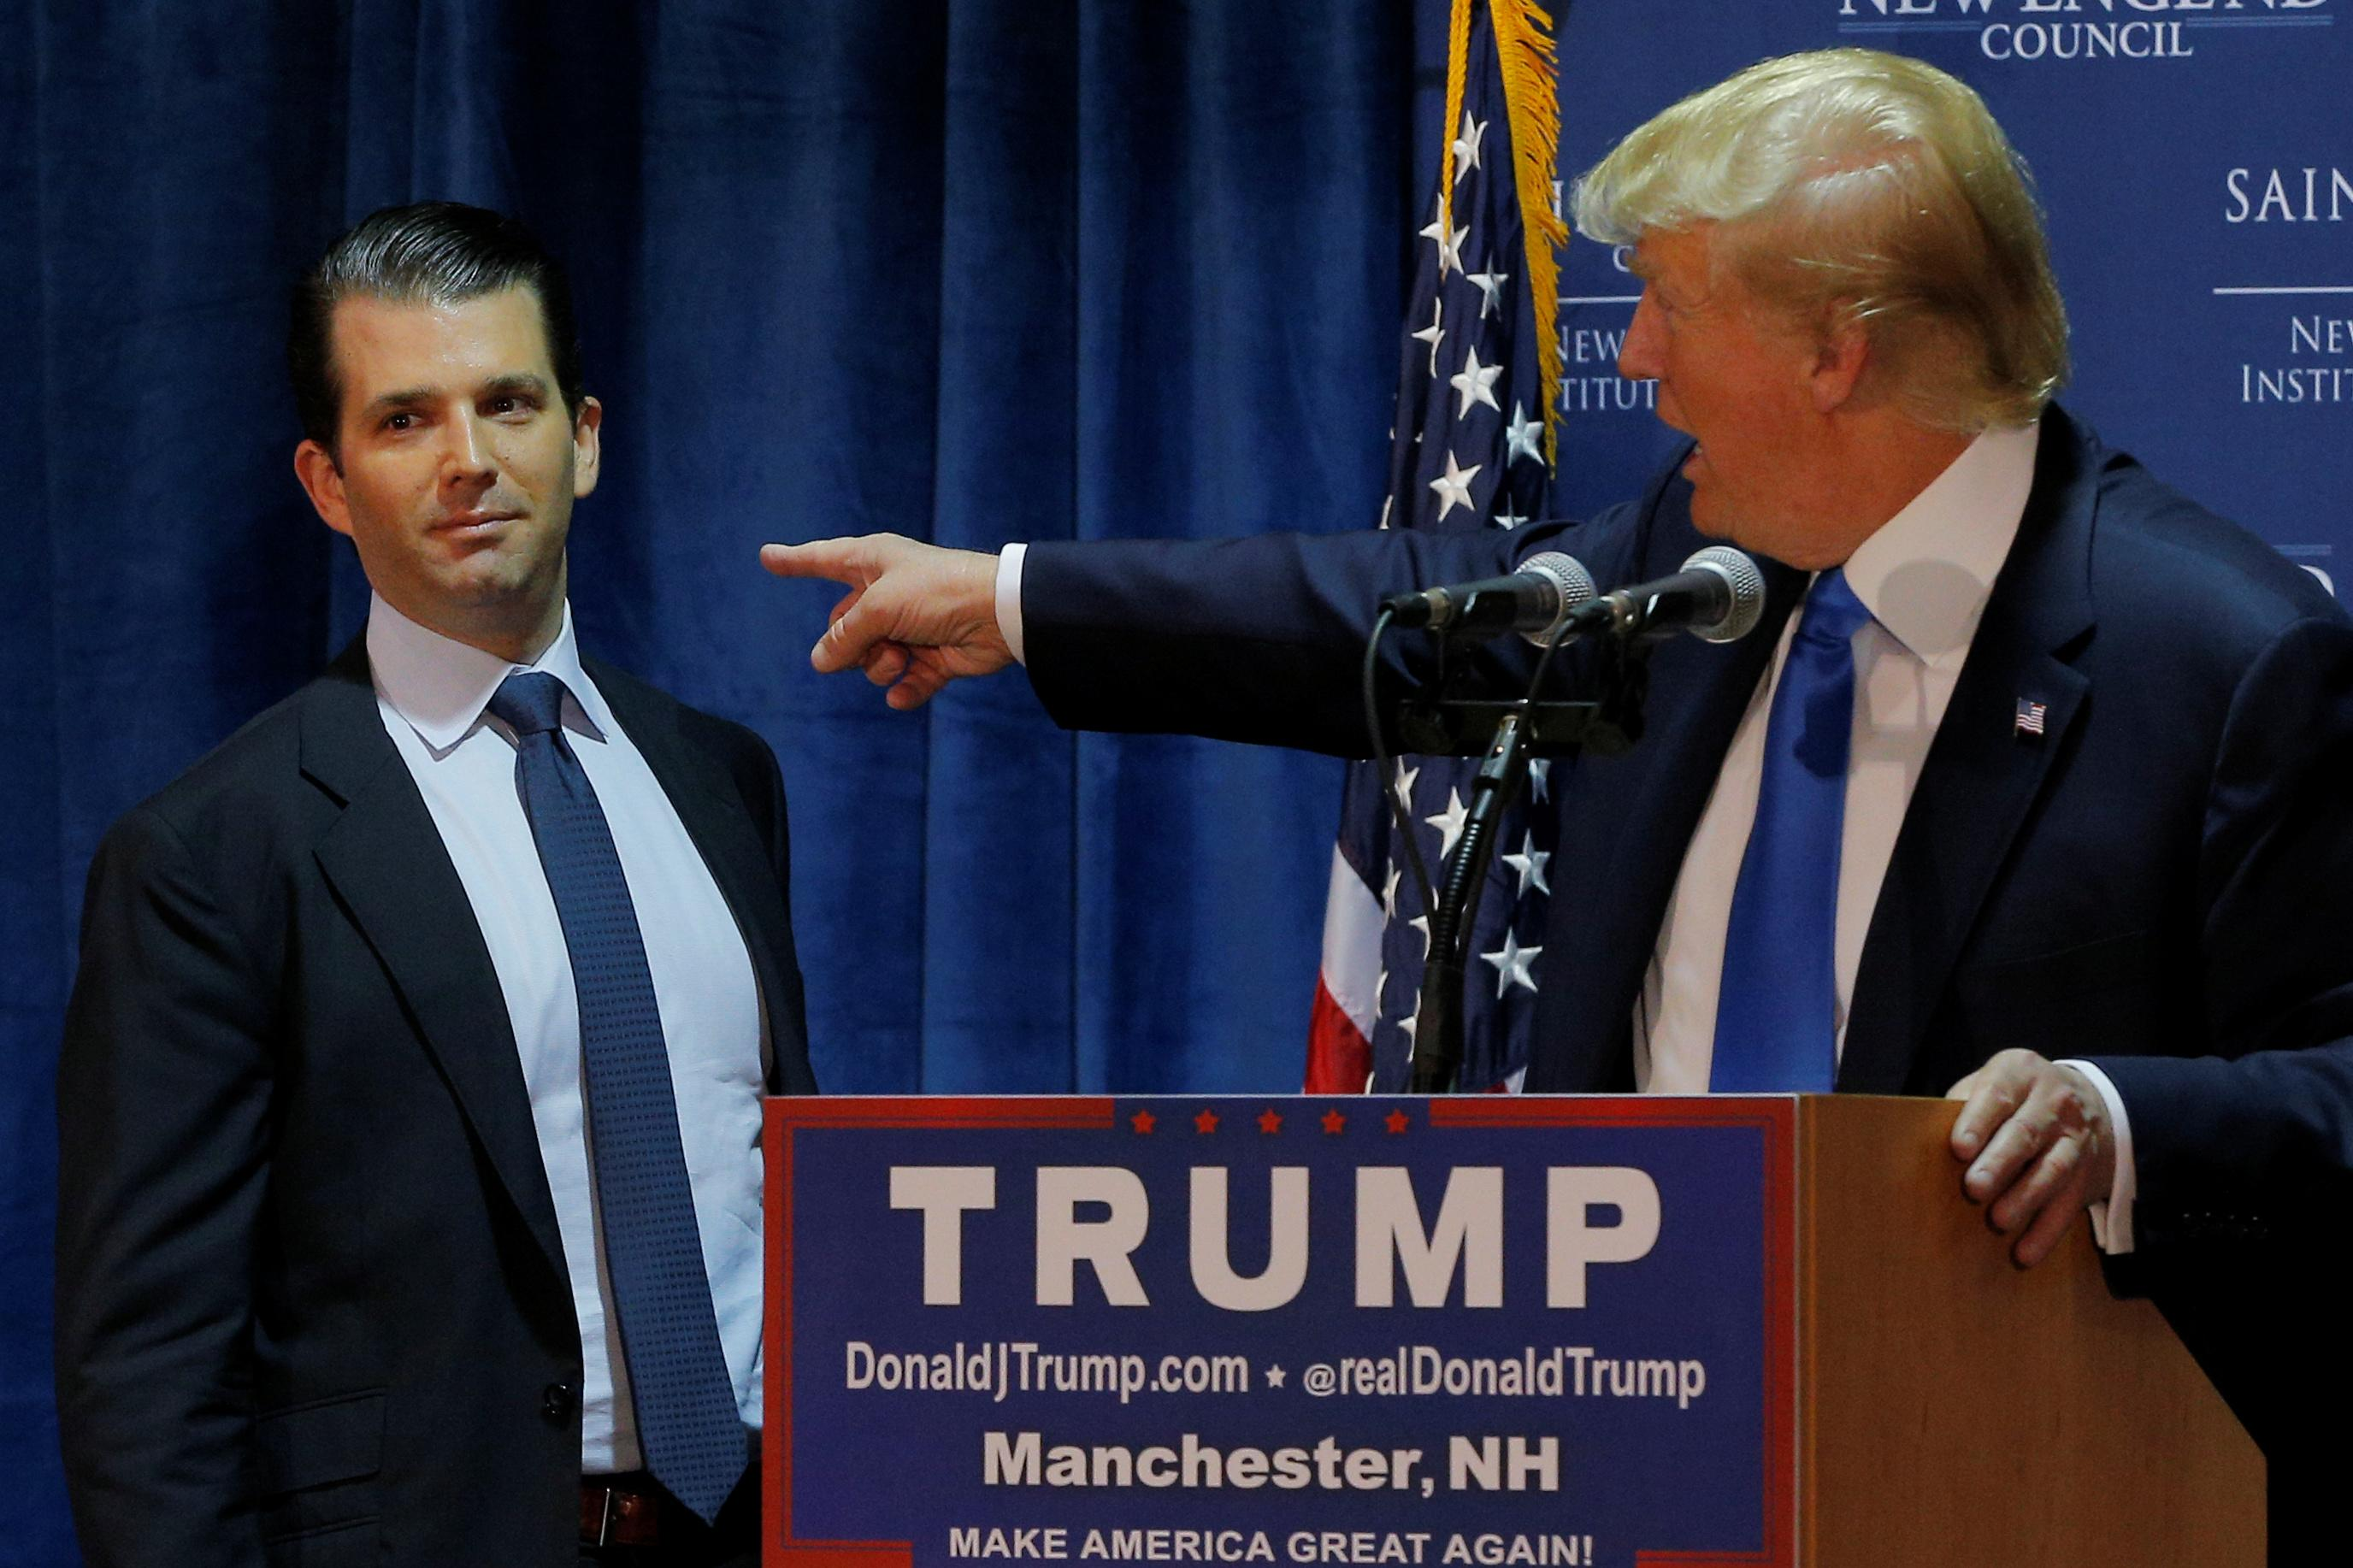 Wikileaks Told Trump Jr. To Tell His Dad To Not Concede If He Lost On Election Day